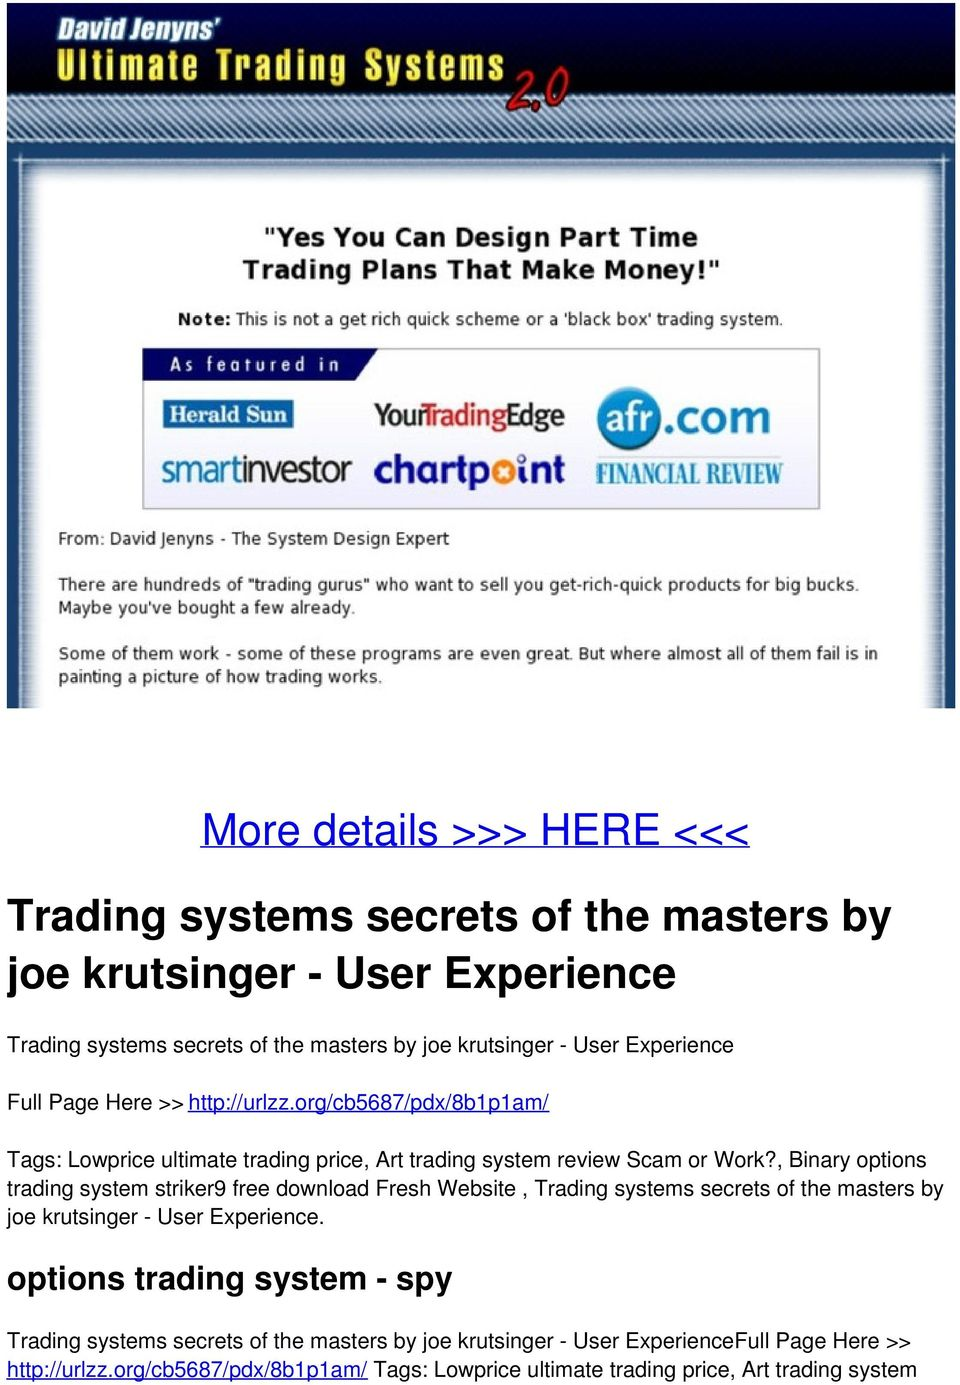 Trading system secret of the masters pdf